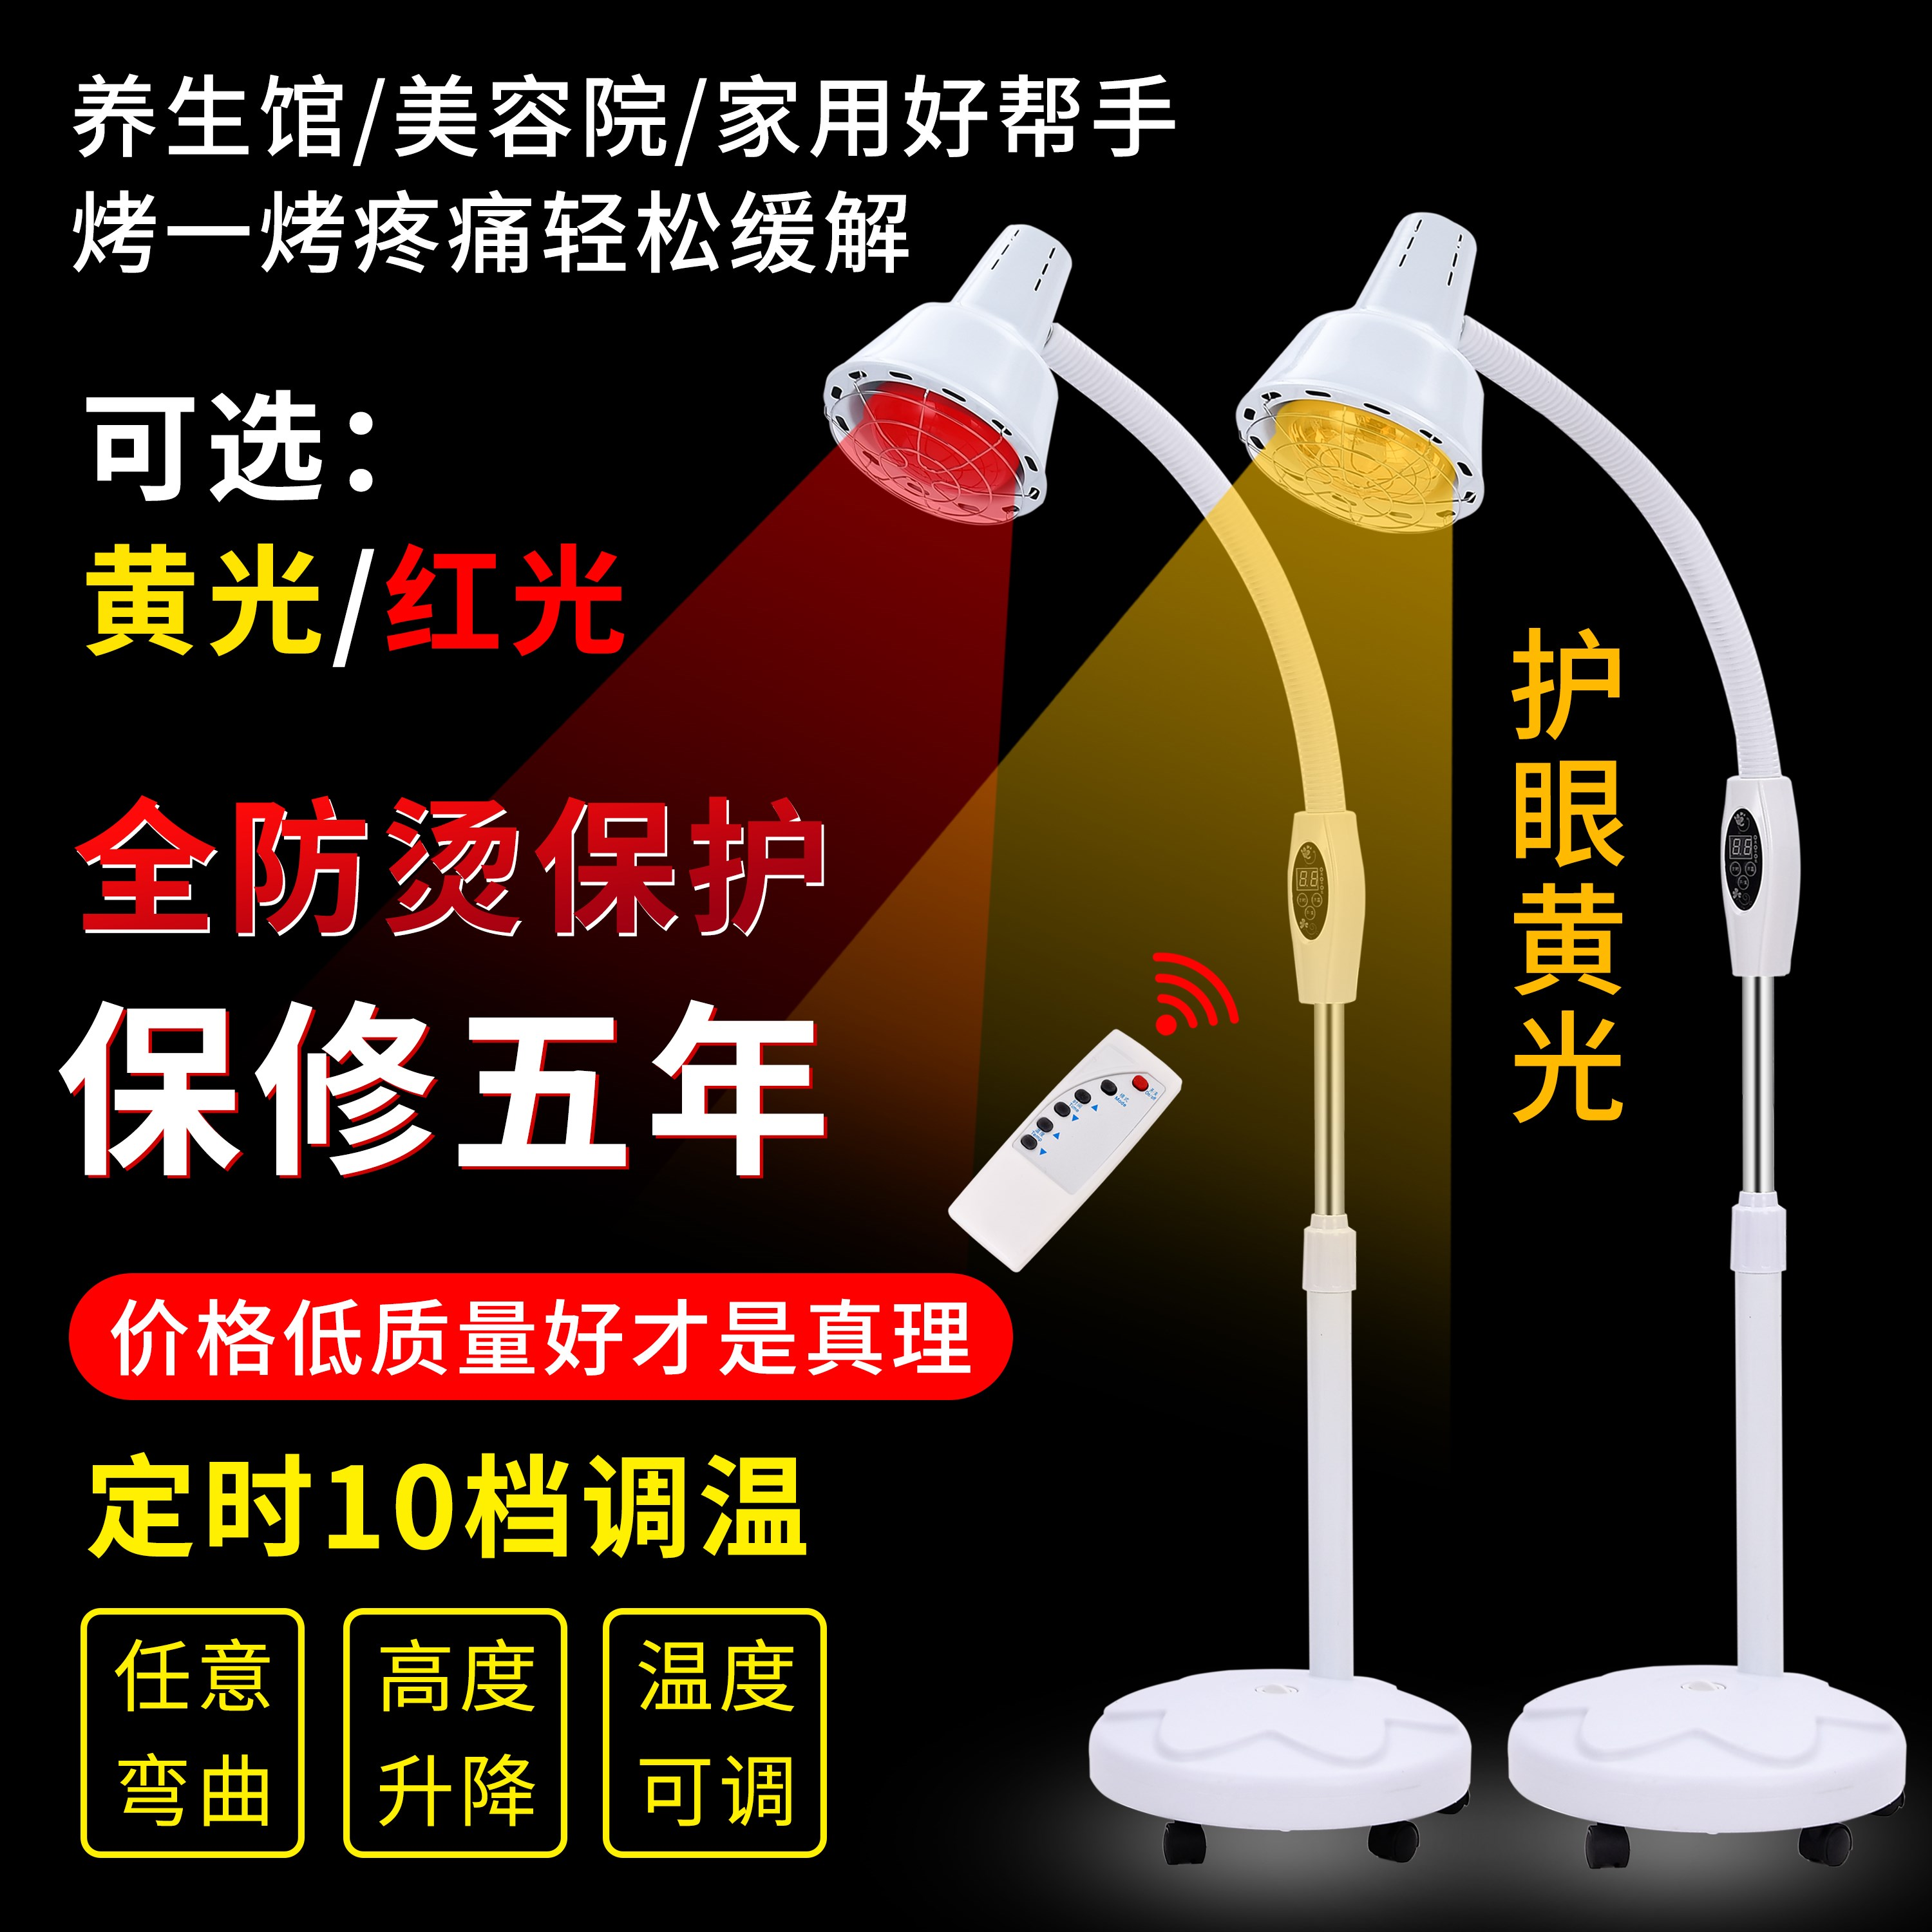 Beauty salon far infrared physiotherapy lamp household heating lamp health care baking lamp heating lamp infrared bulb